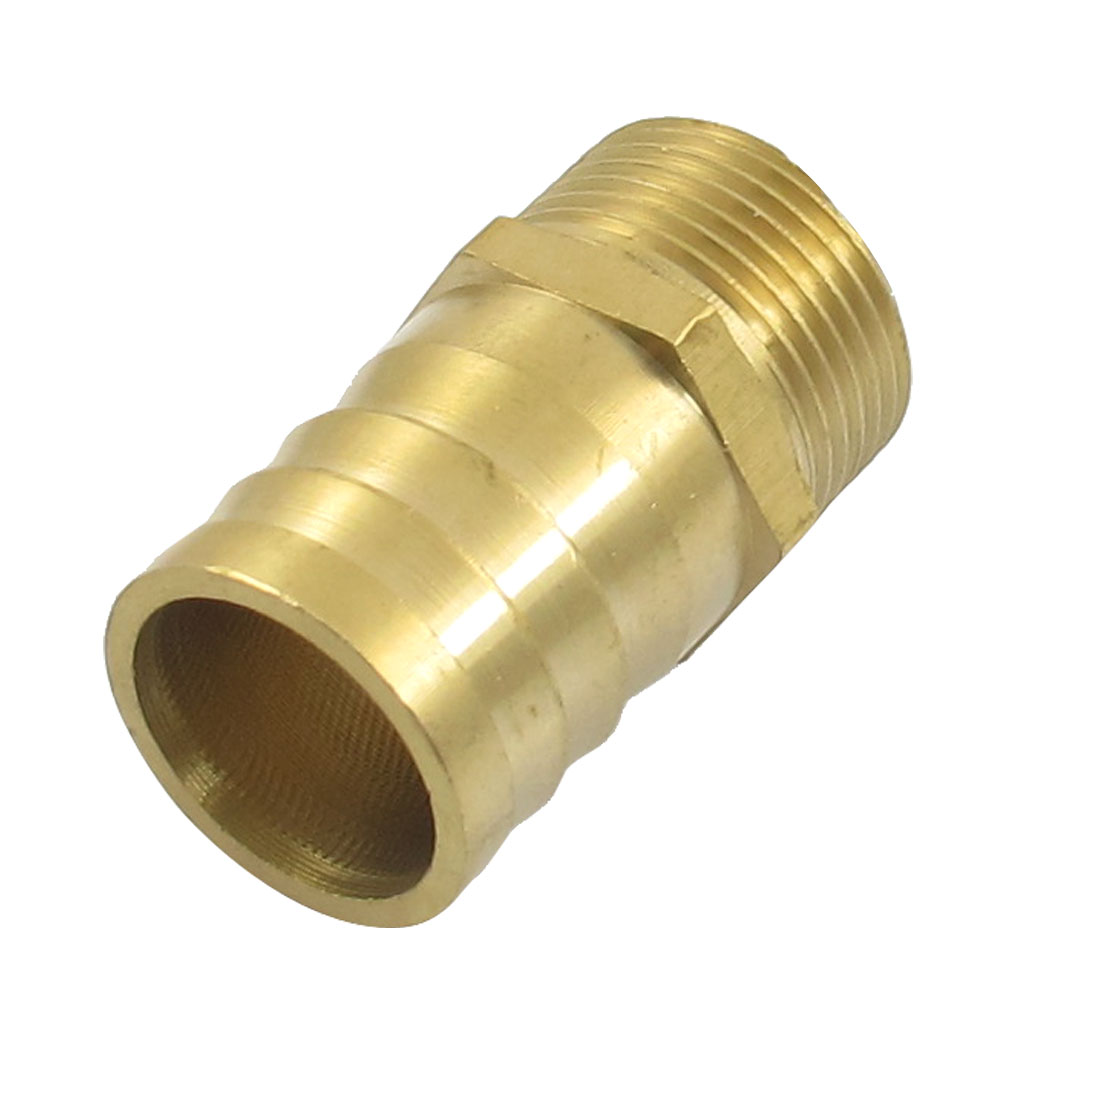 "Gold Tone Brass 32mm Fuel Gas Hose Barb 1.3"" Male Thread Coupling Fitting"